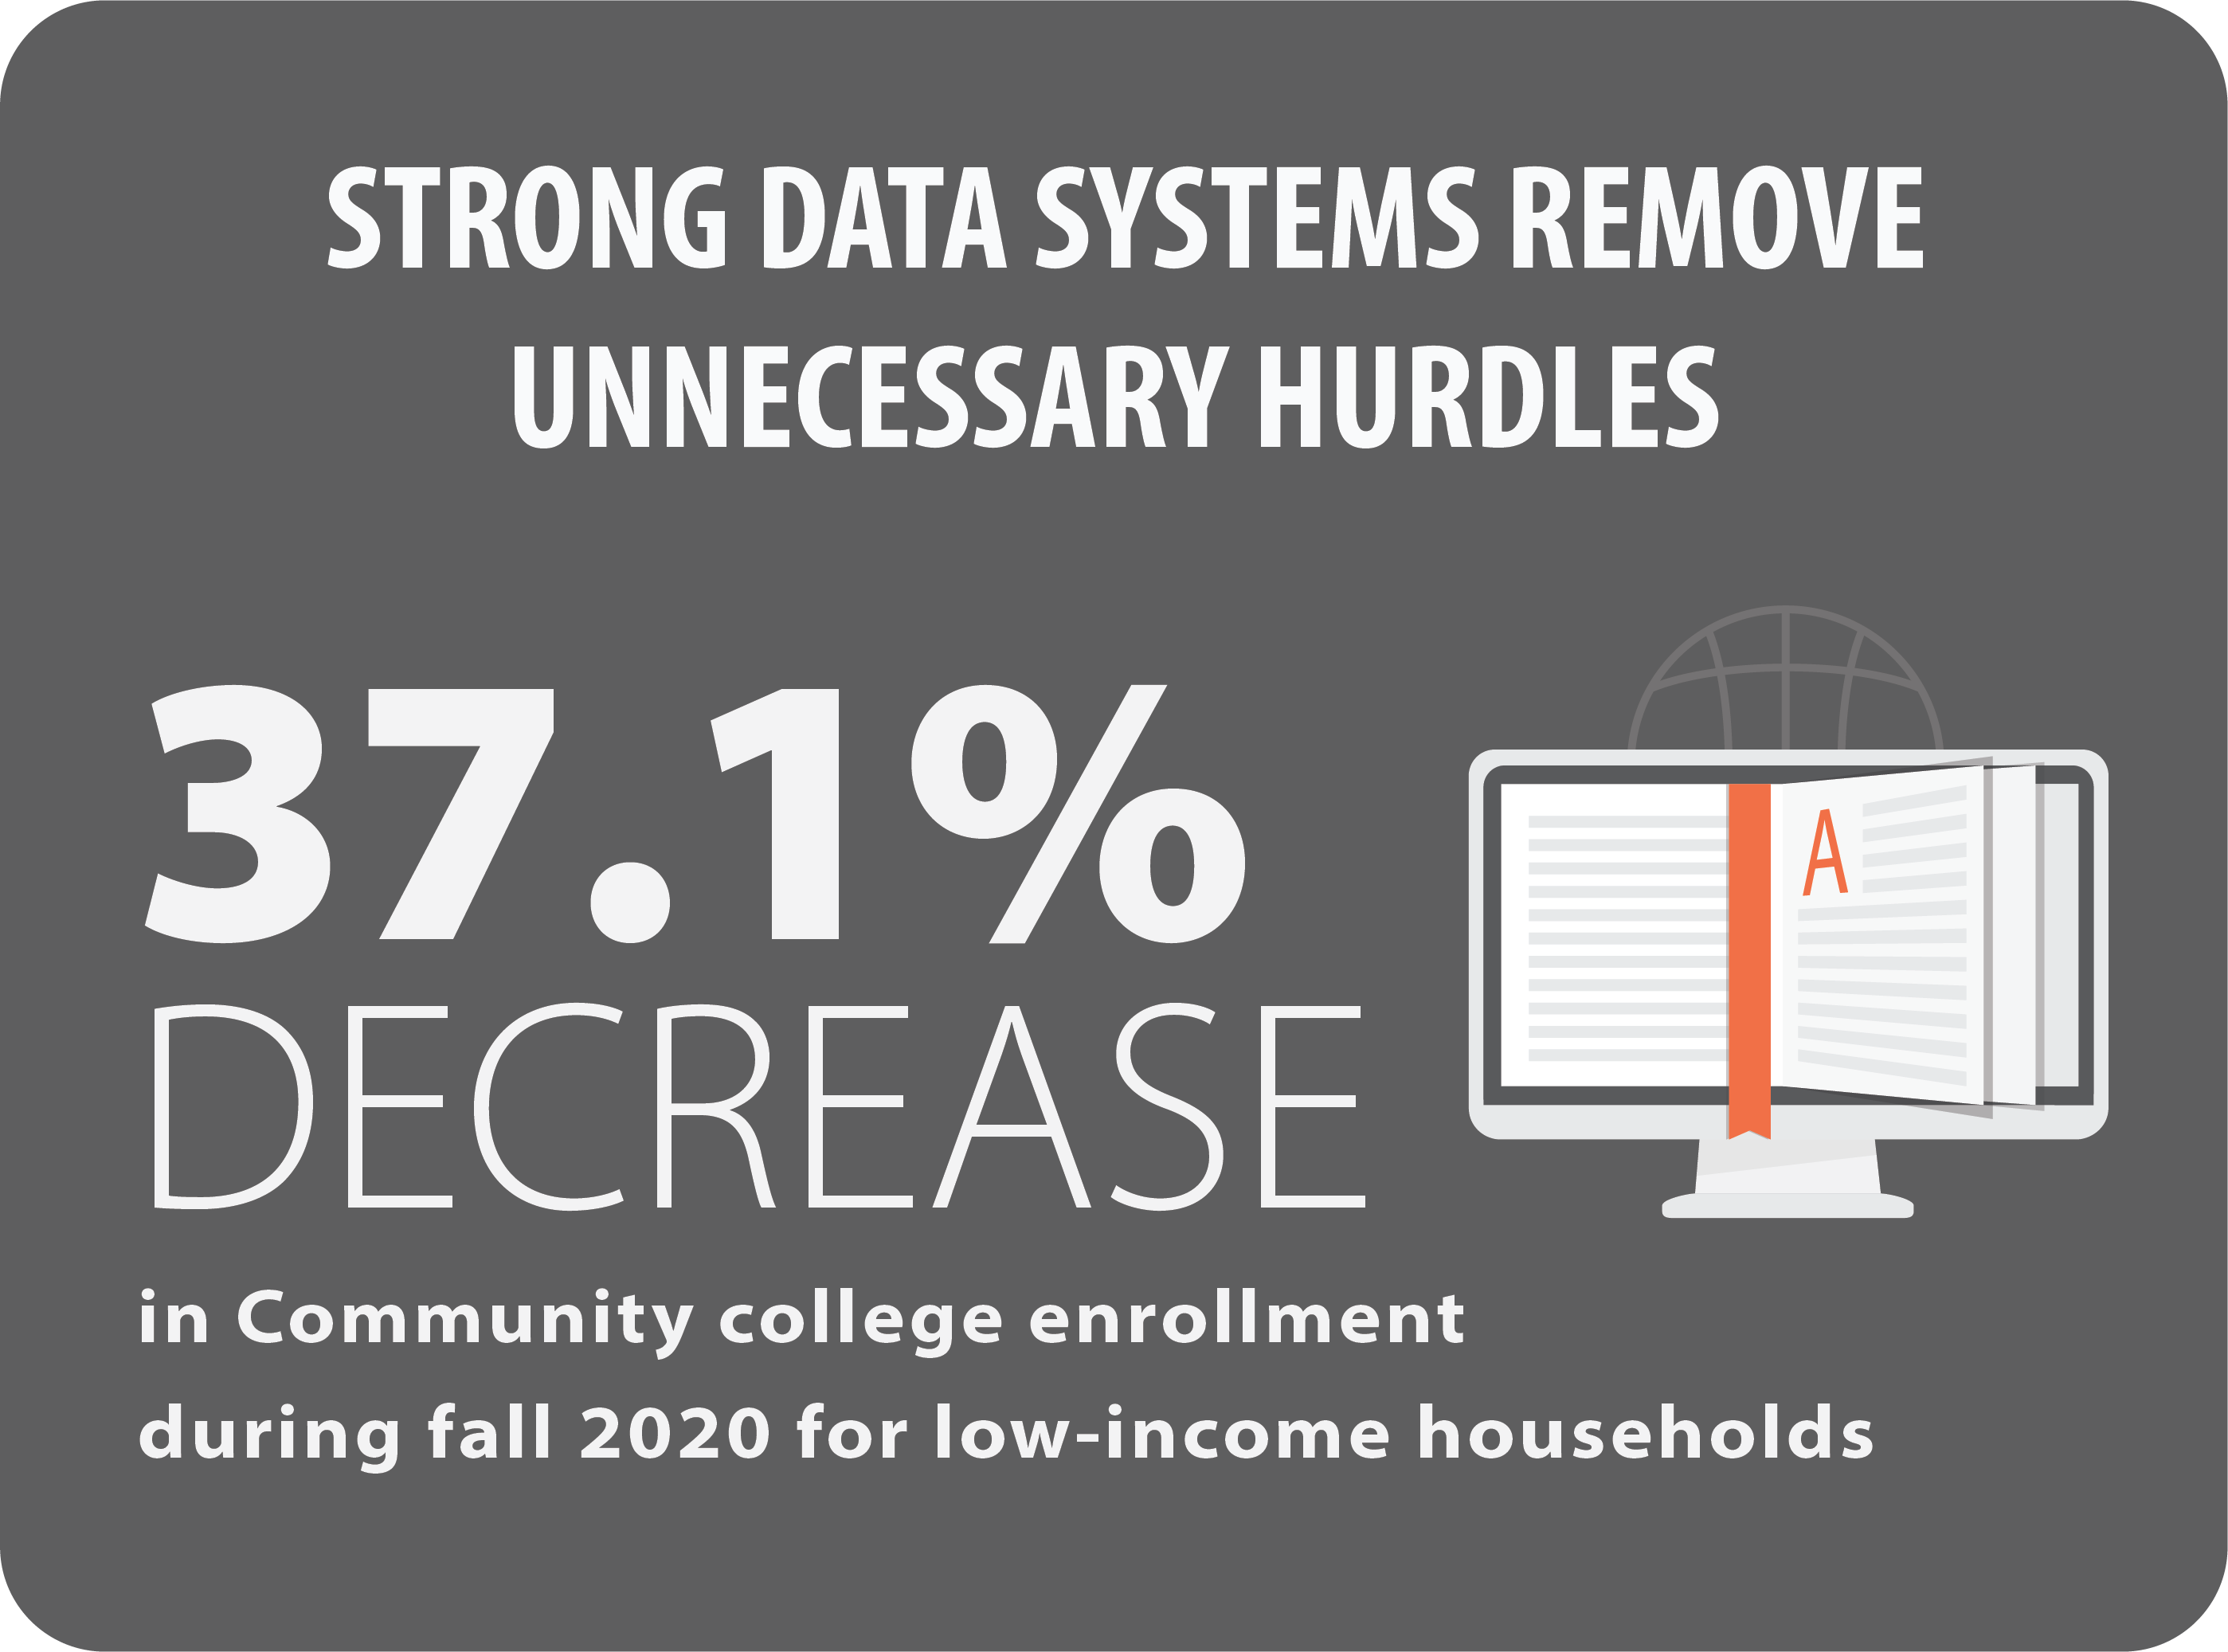 Strong data systems remove unnecessary hurdlers. 37.1% decrease in community college enrollment during fall 2020 for low-income households